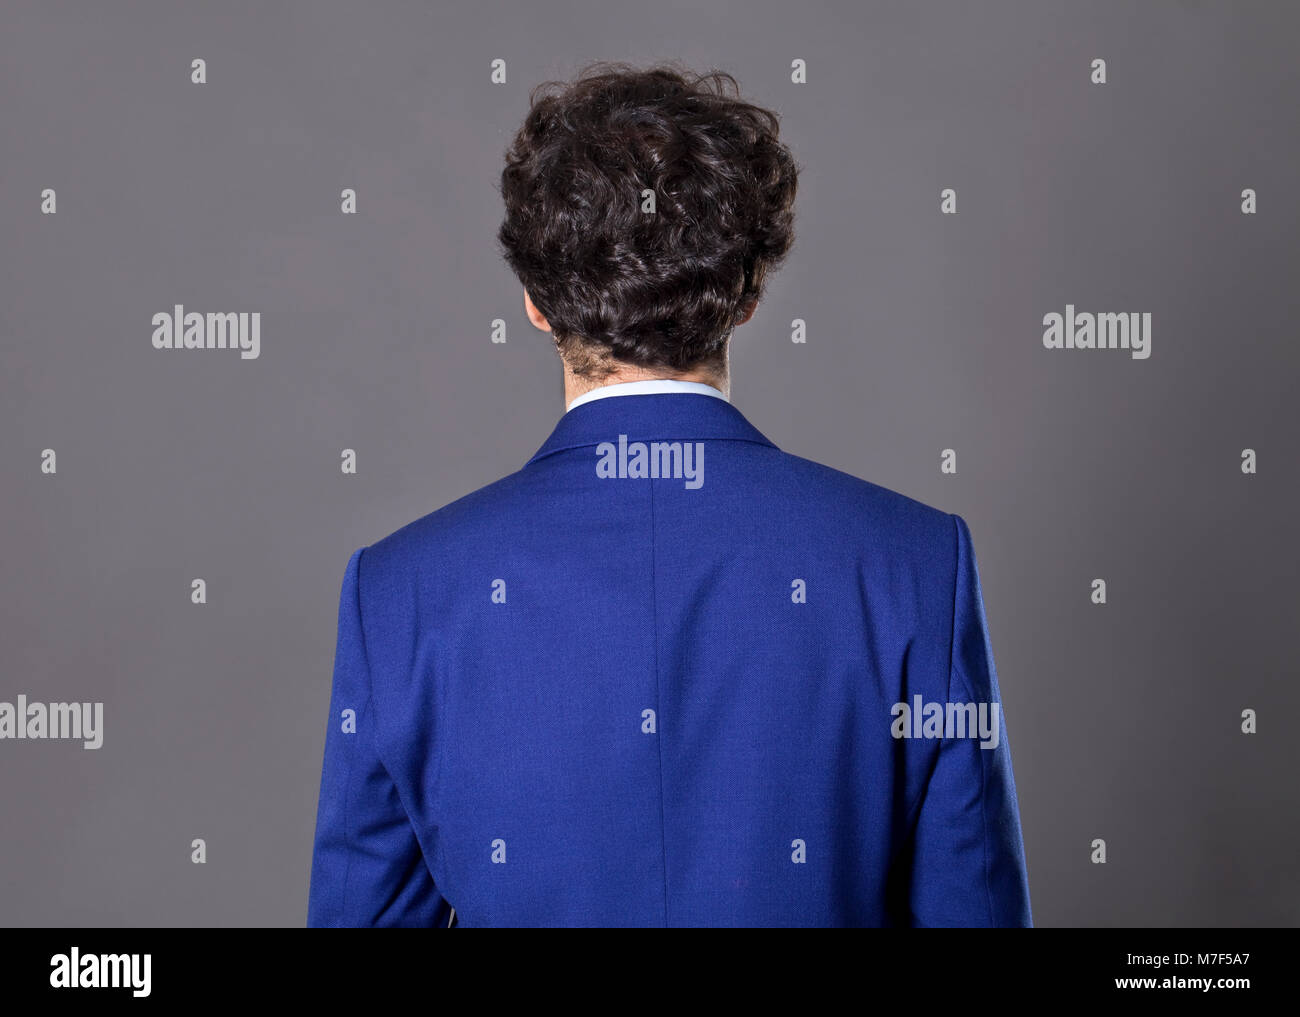 Young man with curly hair standing back to camera - Stock Image